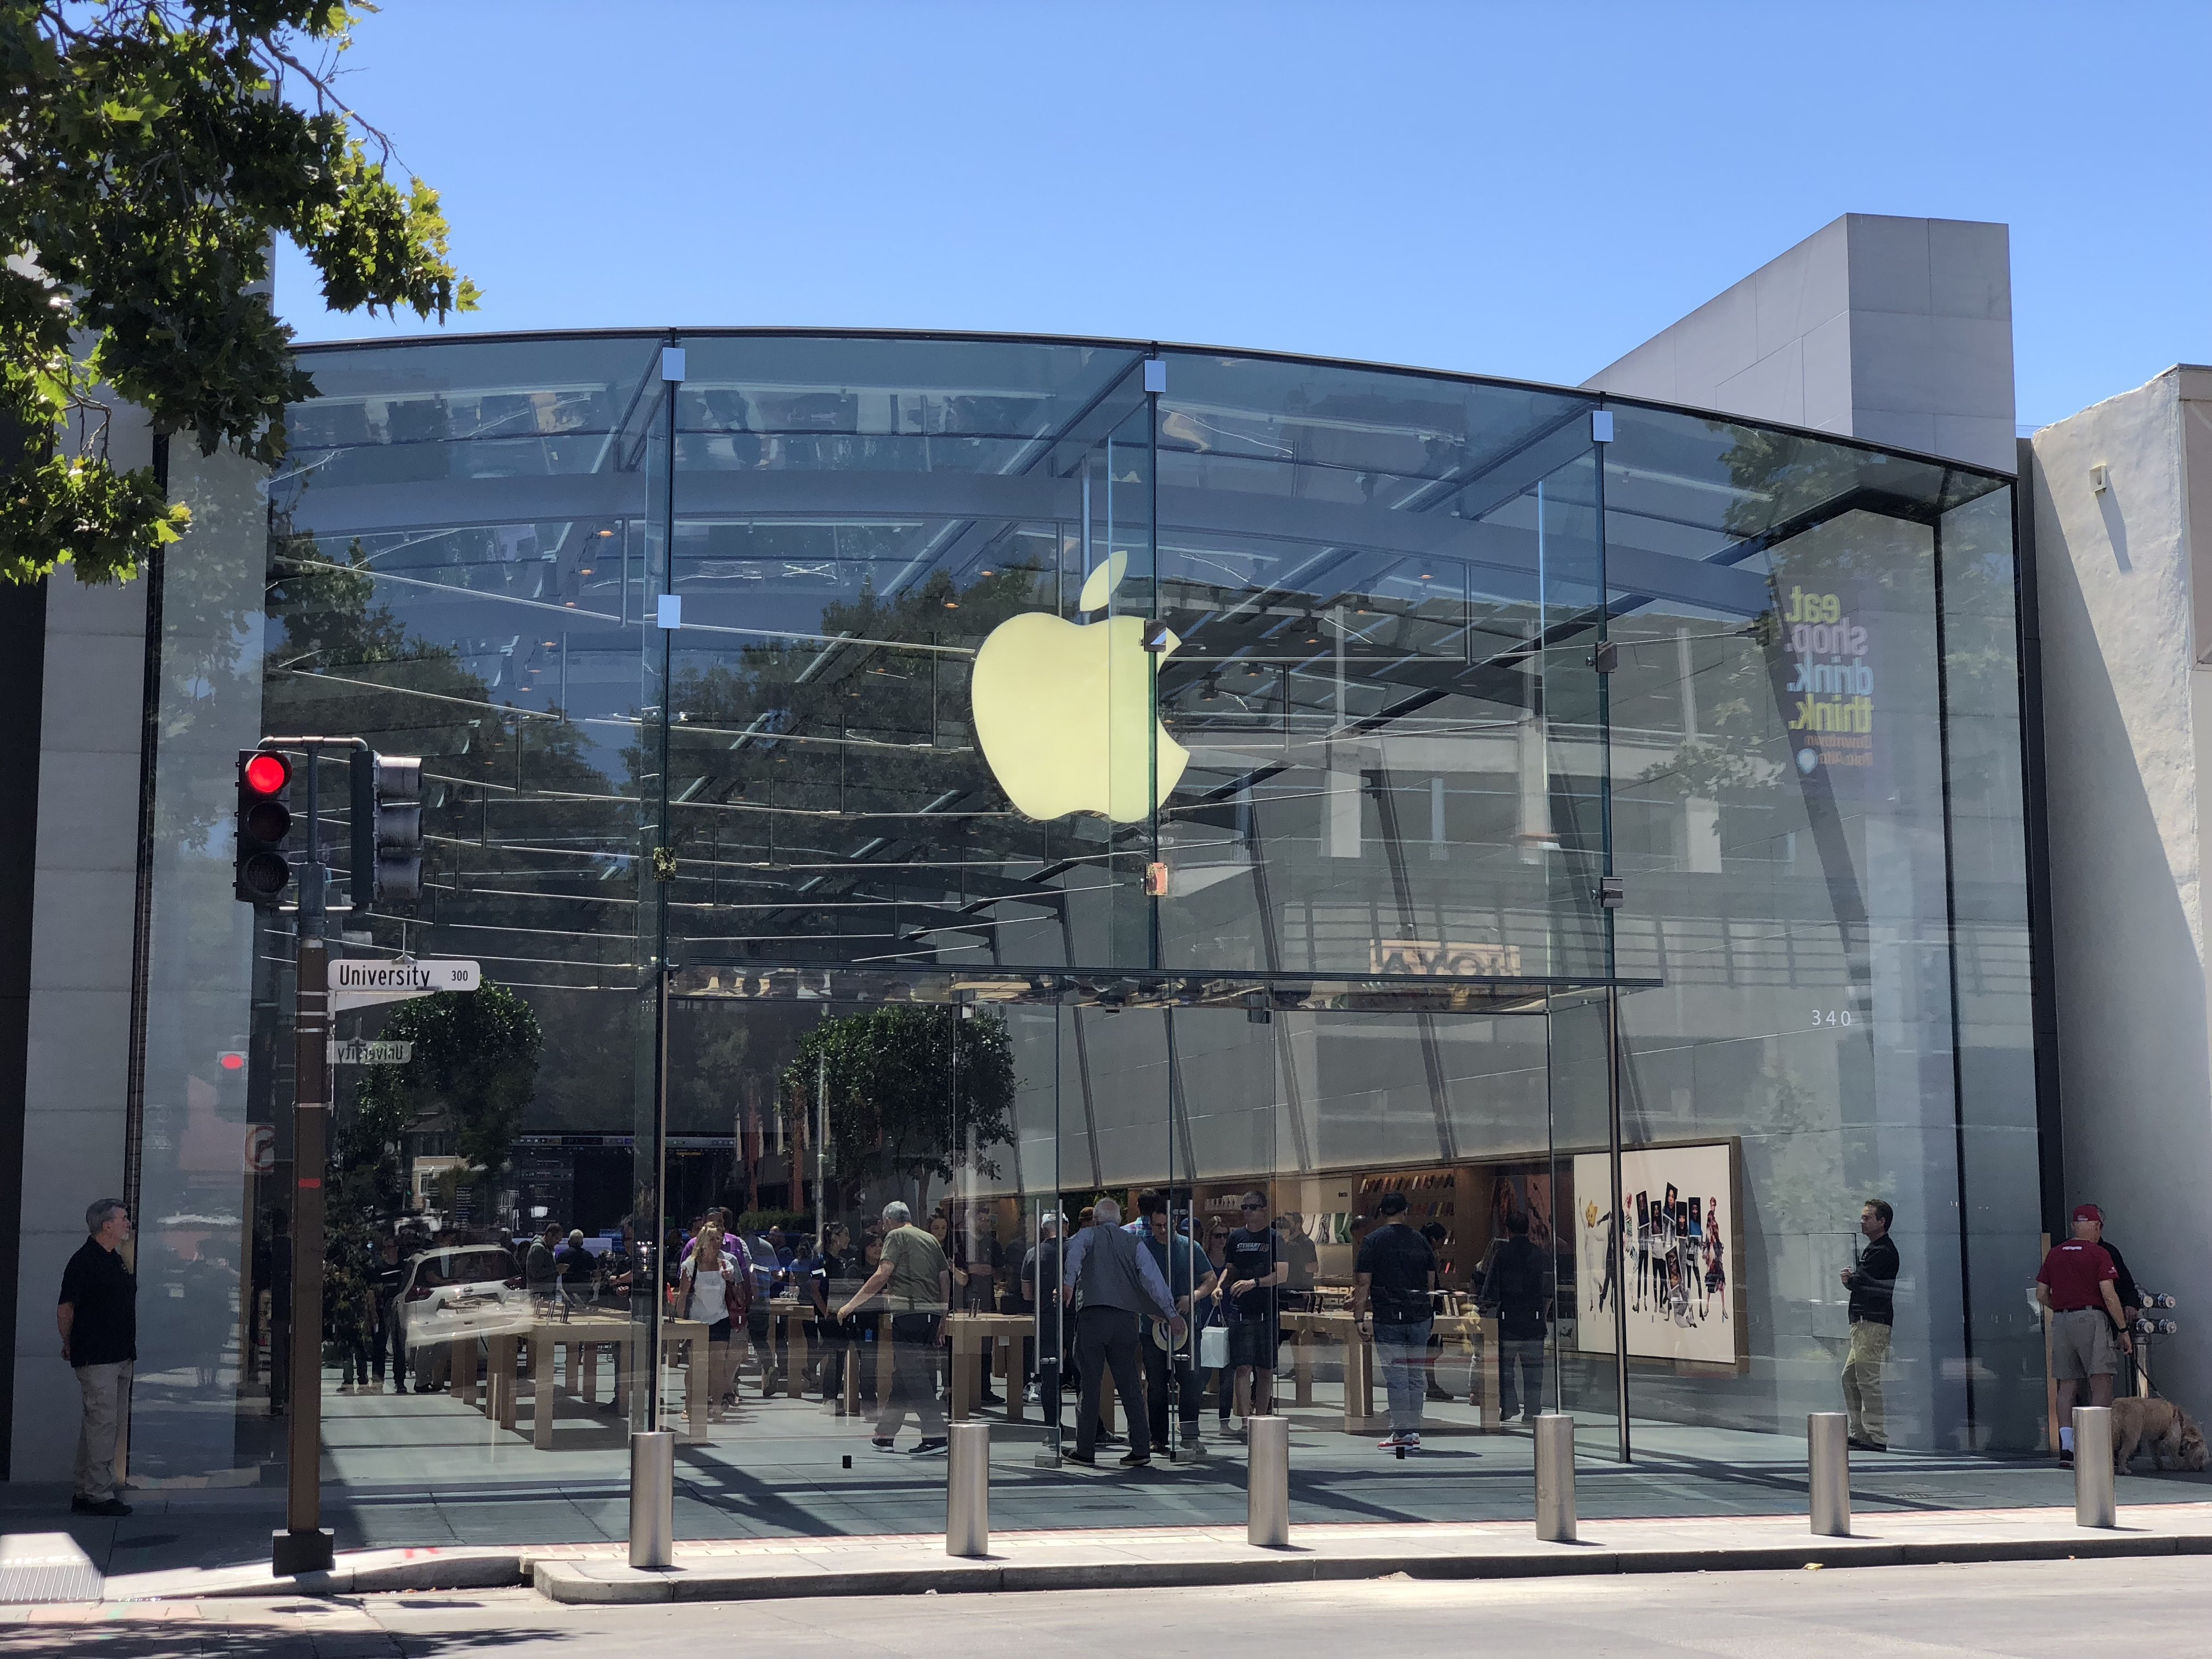 Store Metal Gallery Apple S Renovated Palo Alto Store Blends Latest Retail